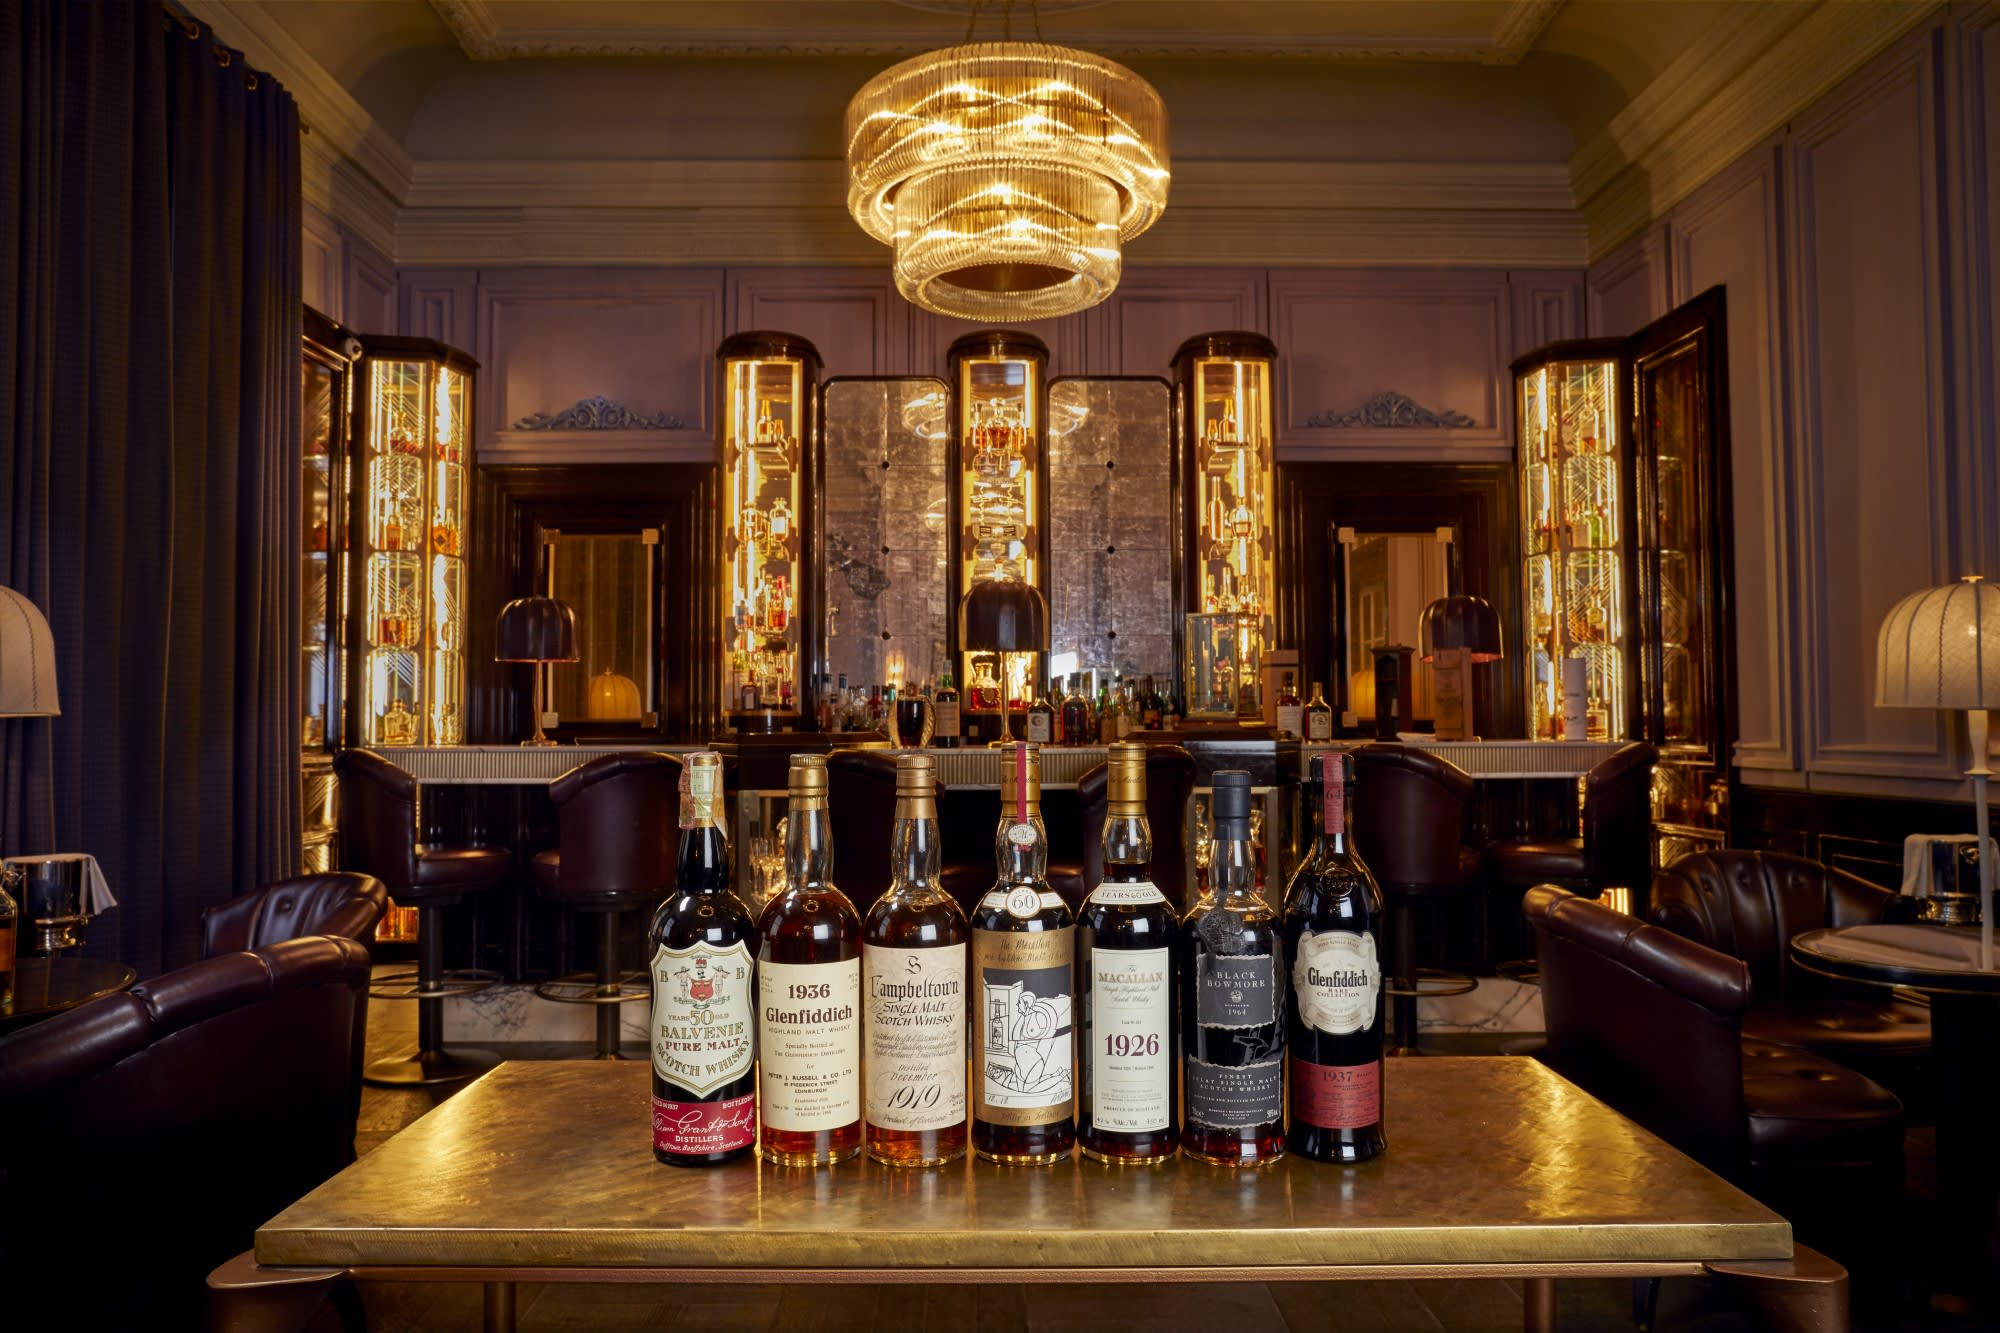 Here's What $10 Million Worth Of Rare Whisky Looks Like photo